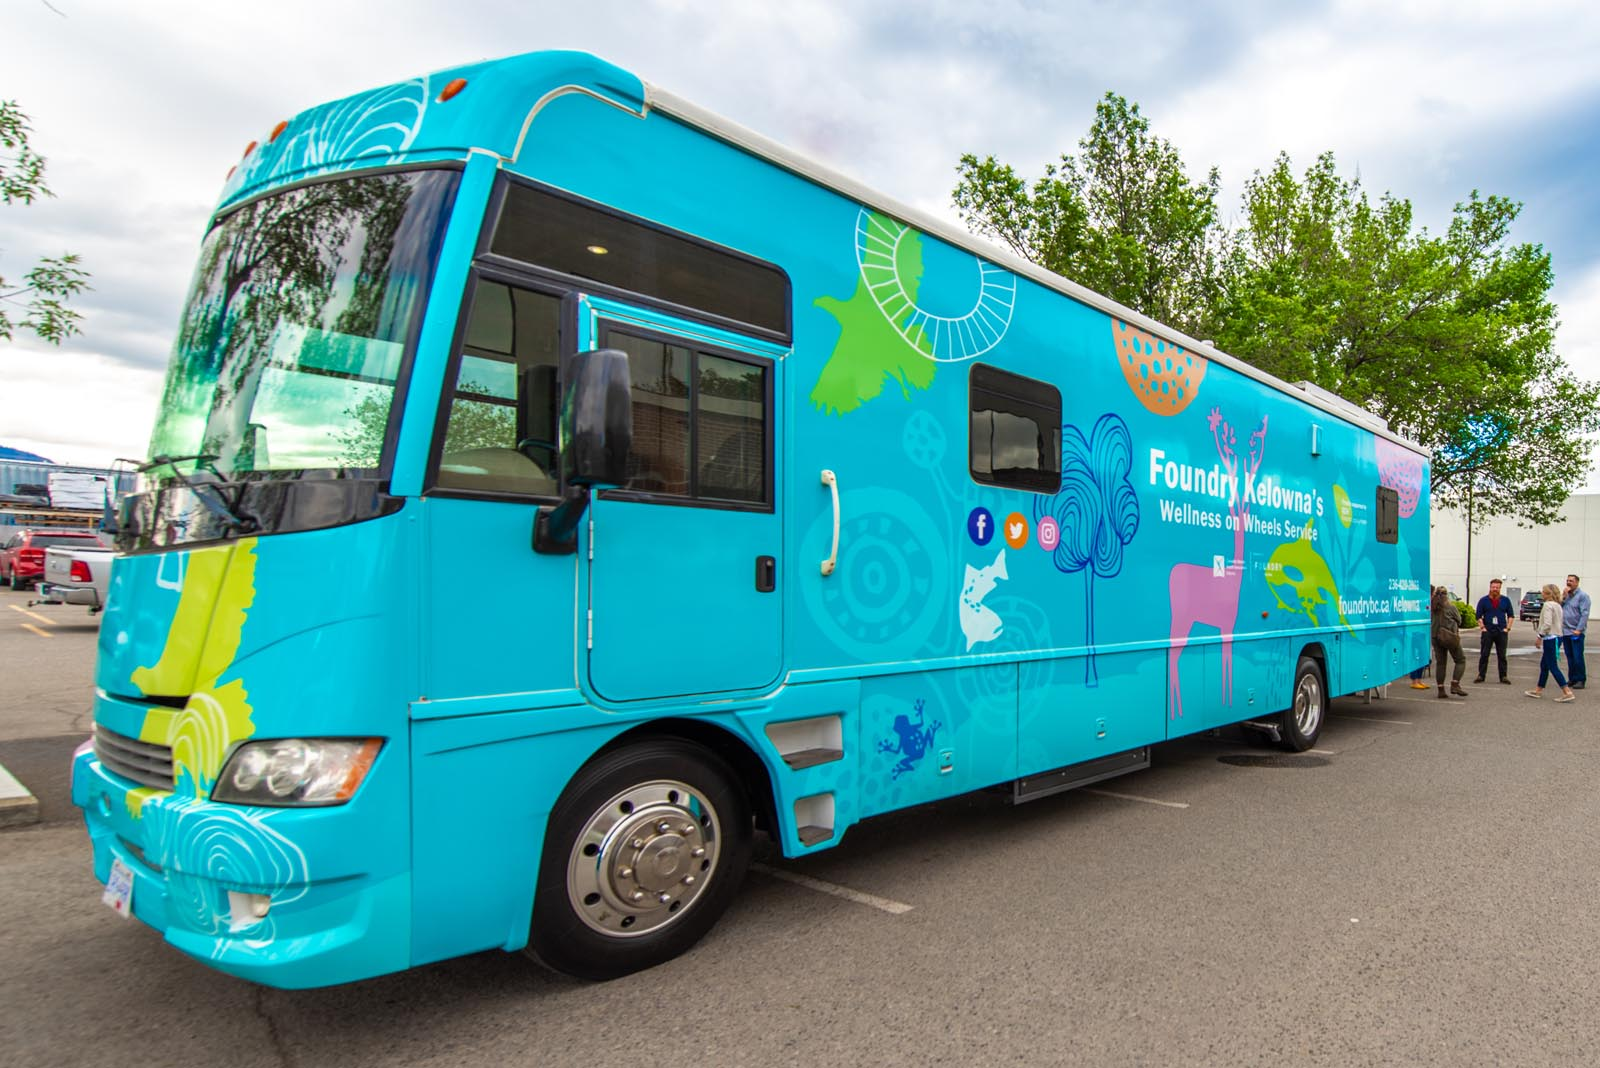 Wellness on Wheels Foundry mobile unit image